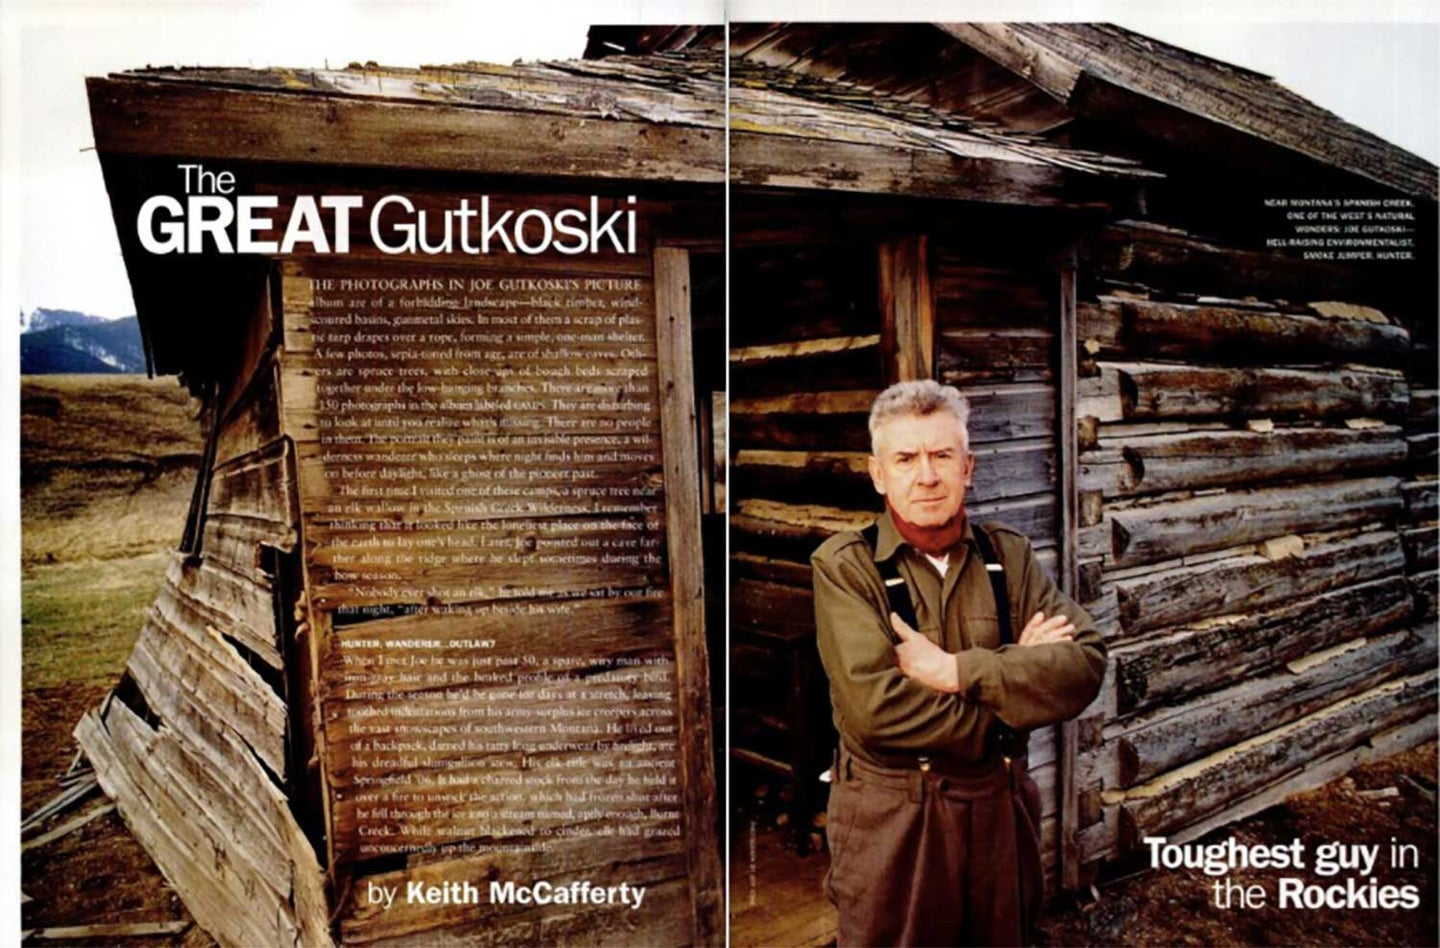 A clipping from Field & Stream Magazine showing a man standing in front of a wooden cabin.